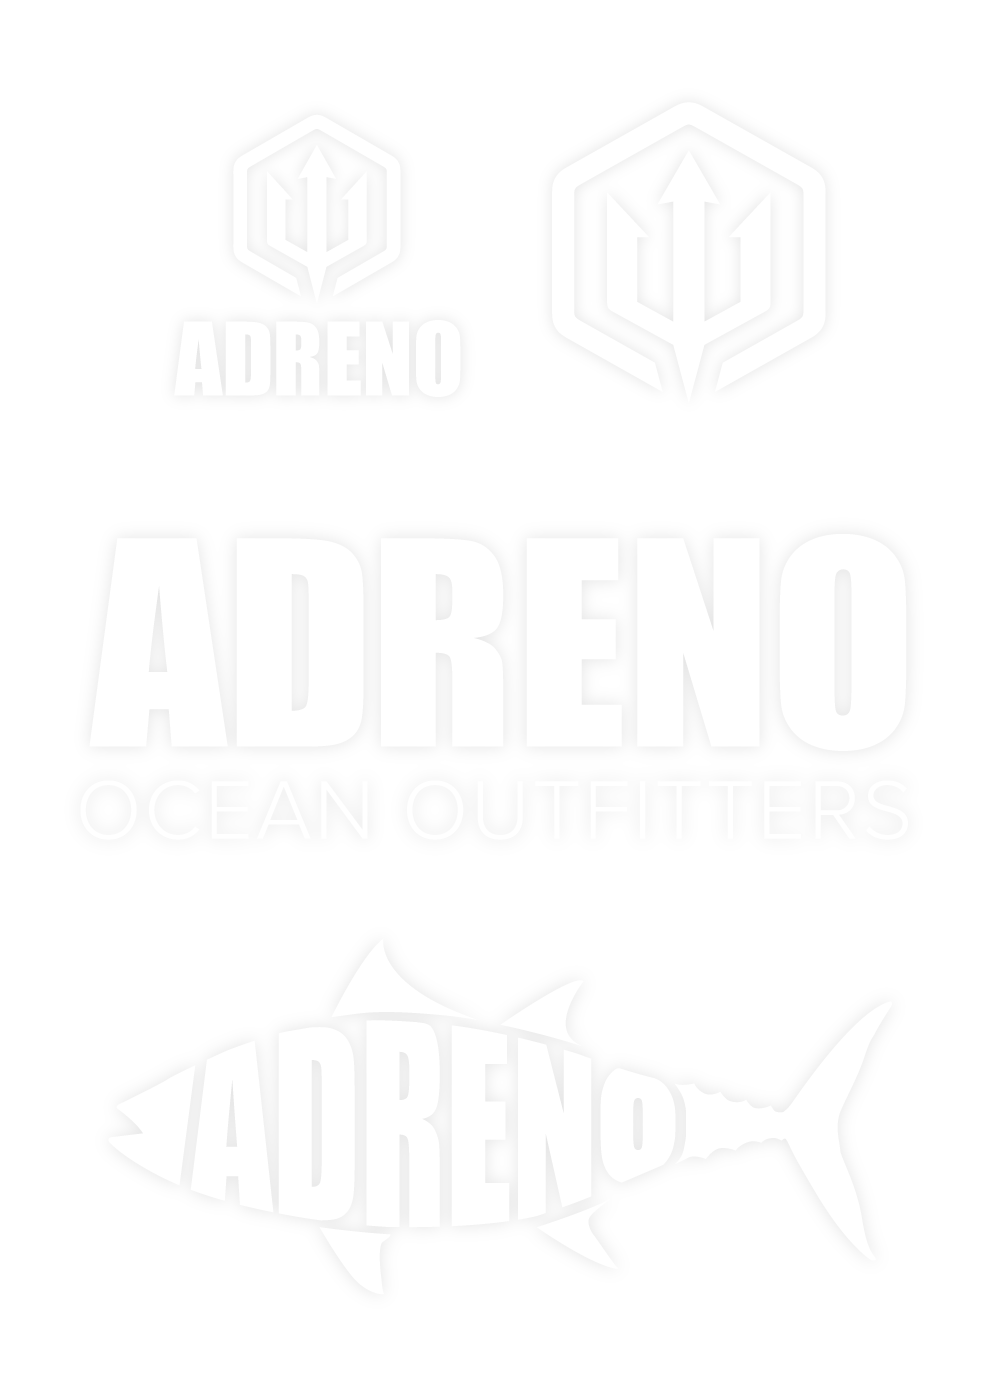 Adreno Ocean Outfitters sticker sheet